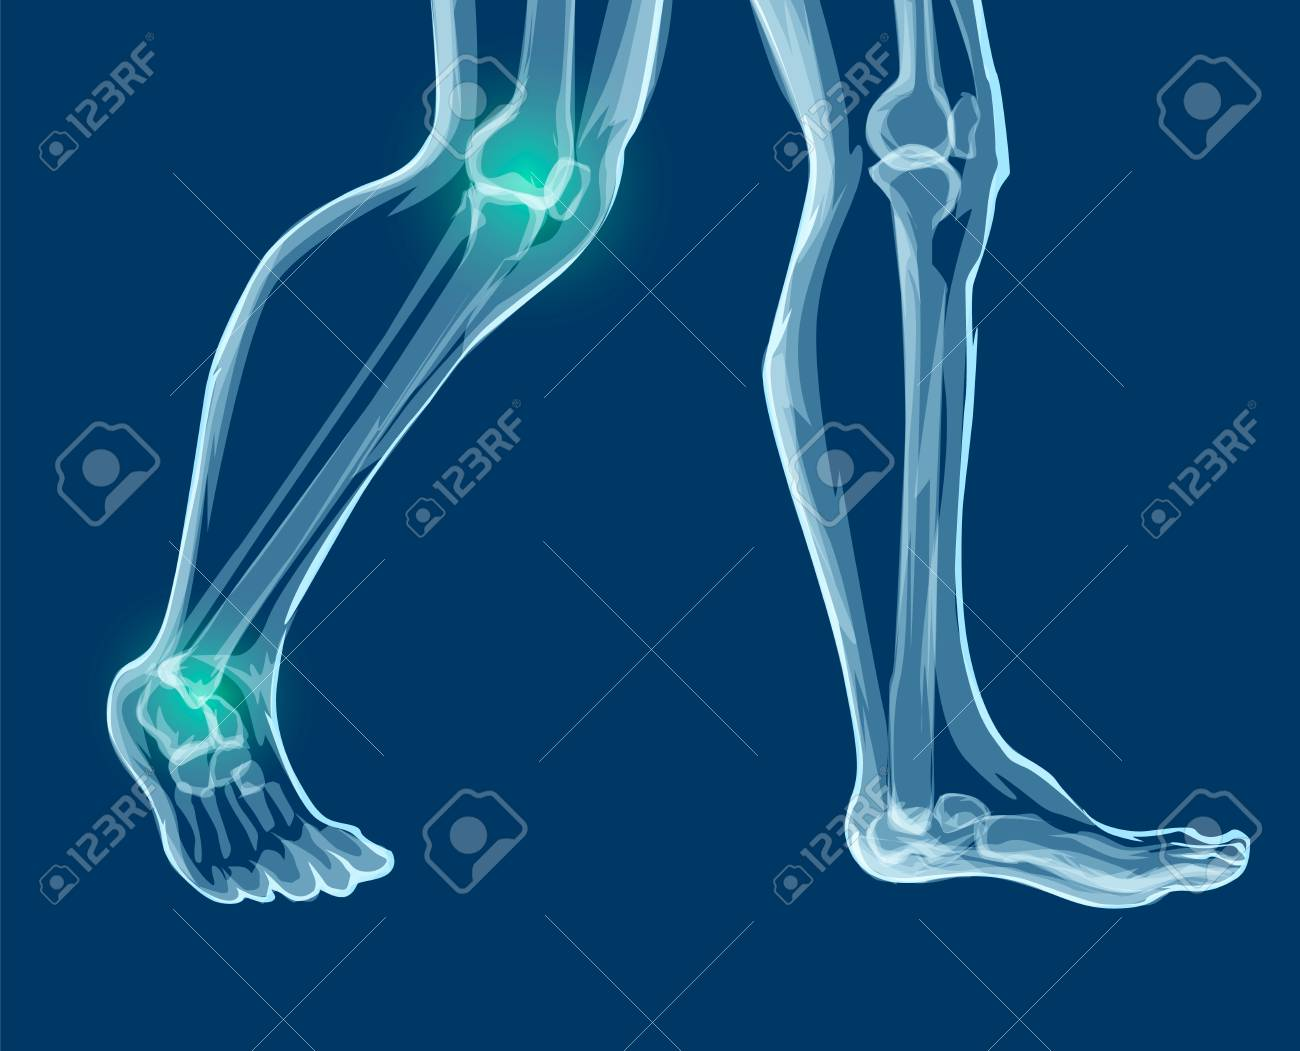 Human Leg Bones And Joints X Rays Mecial Vector Illustration